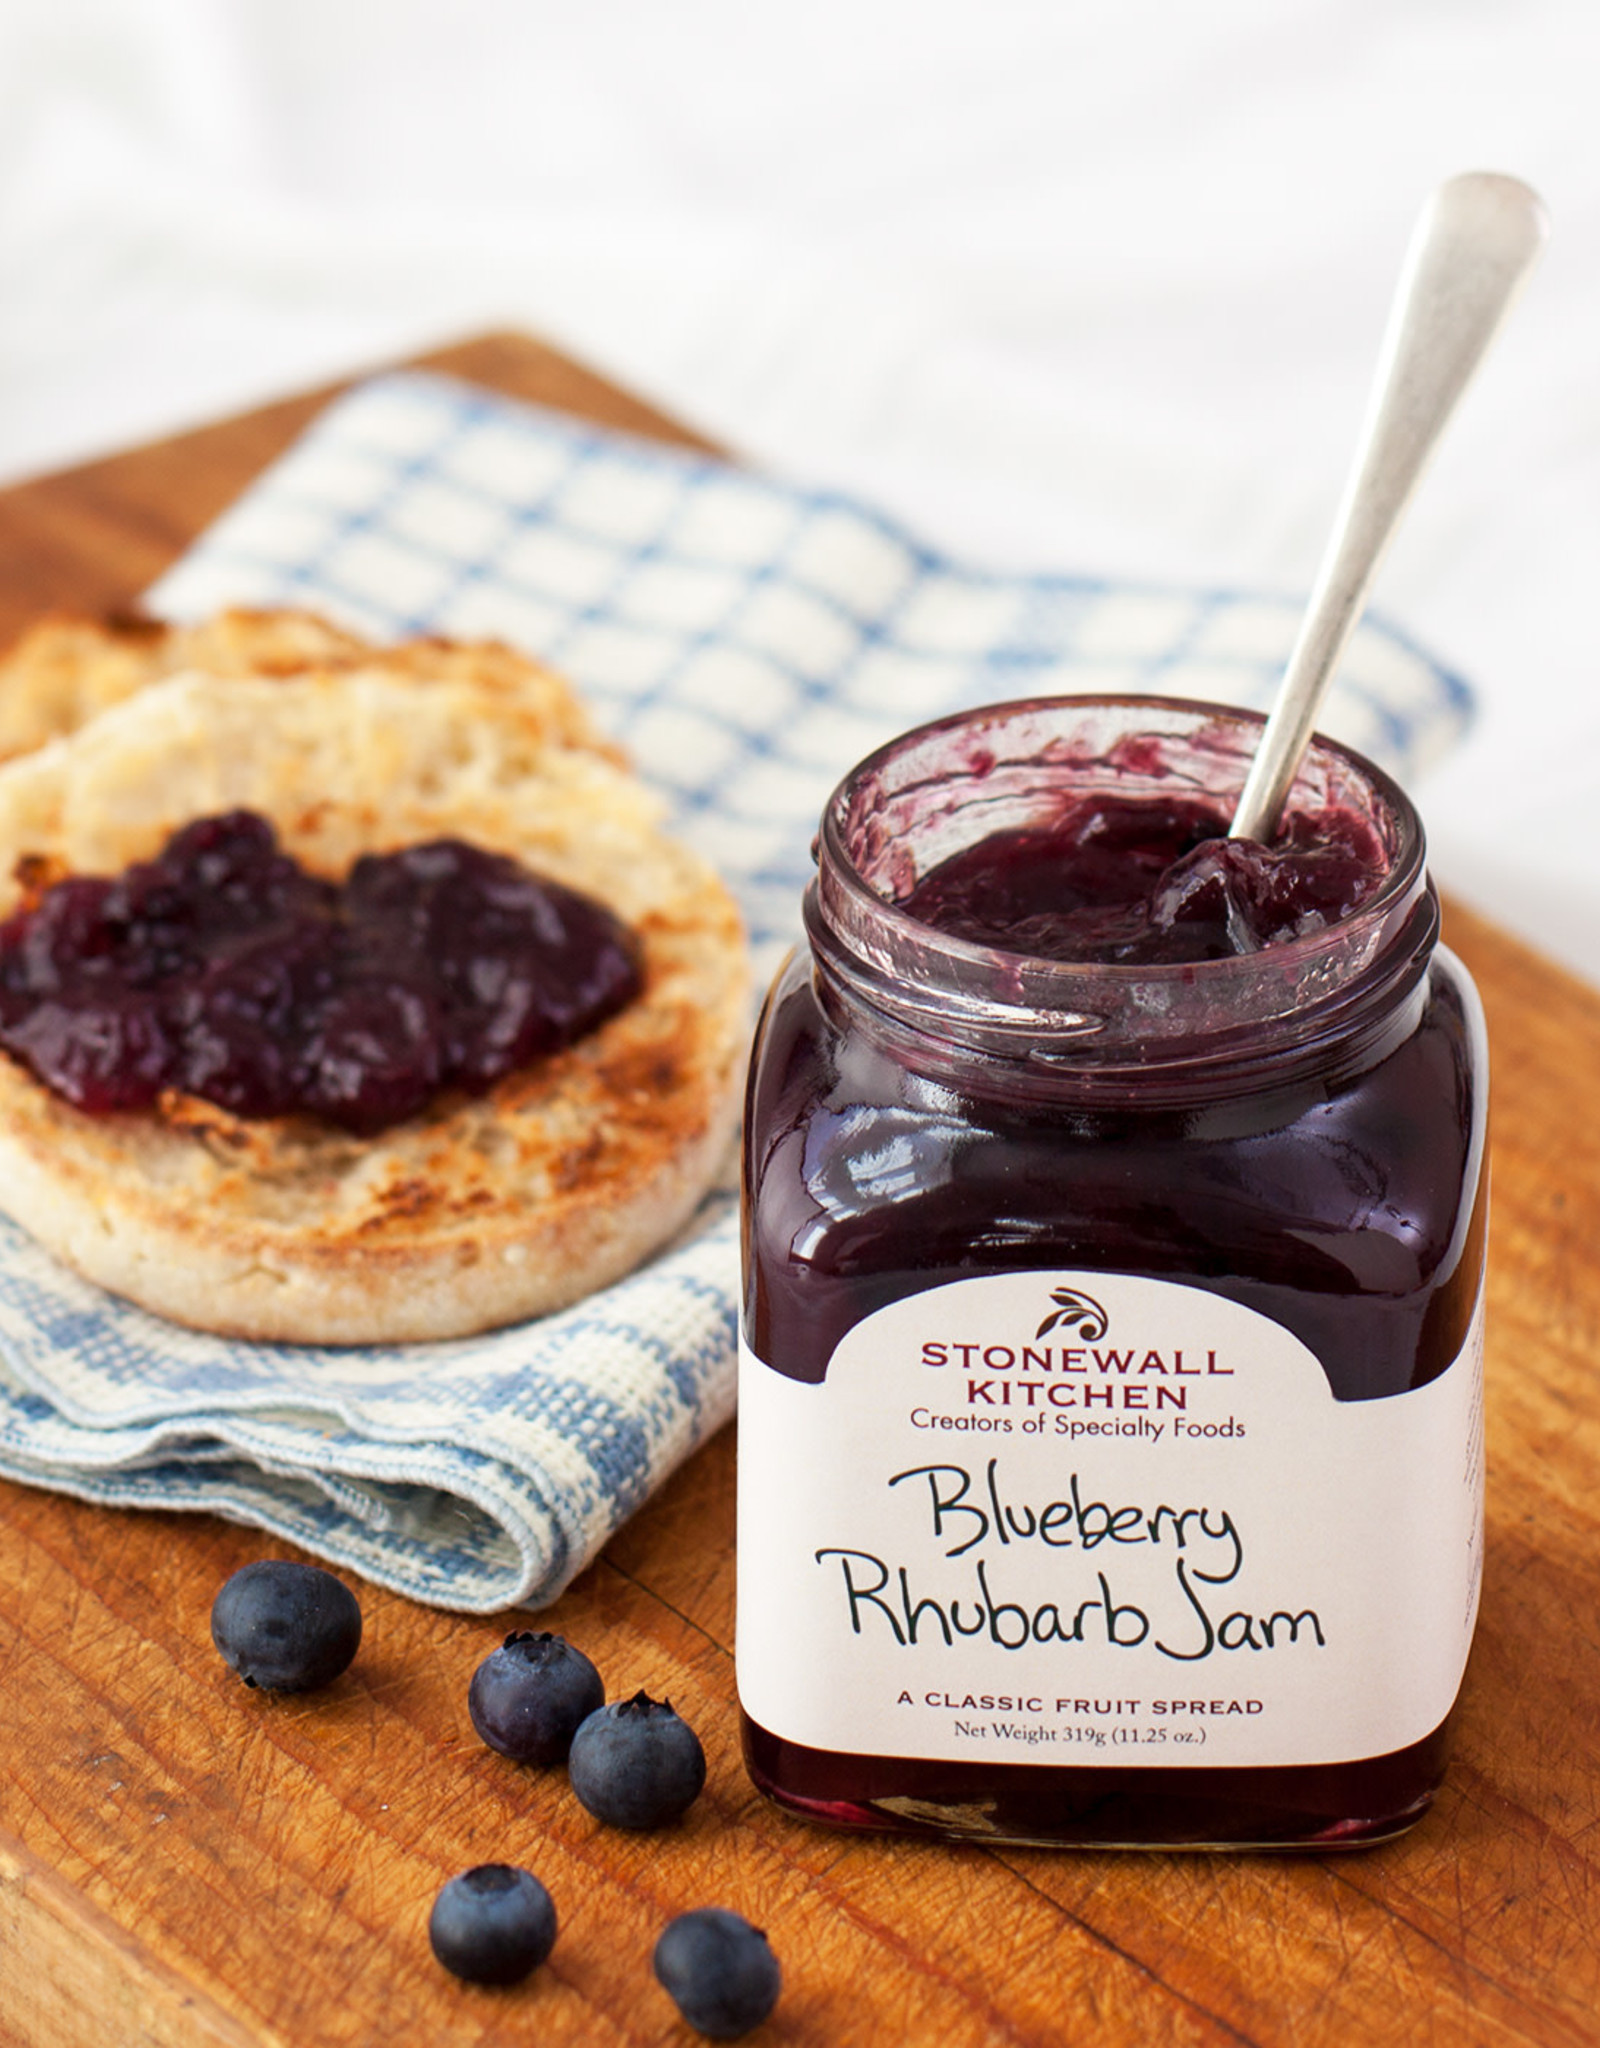 Stonewall Kitchen Blueberry Rhubarb Jam